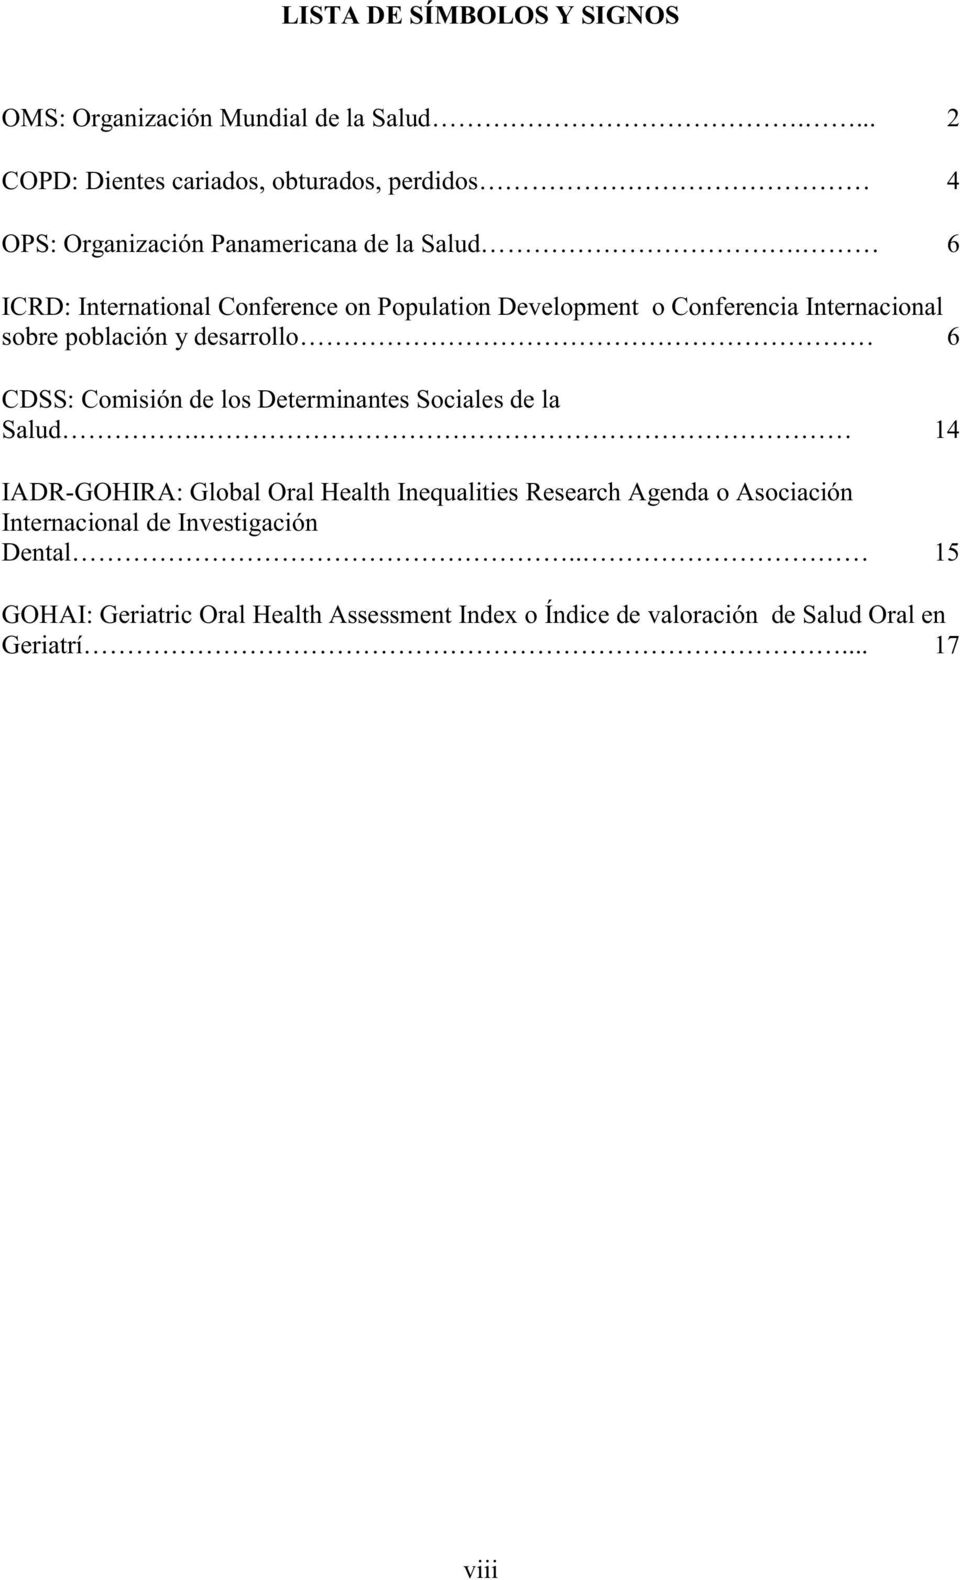 los Determinantes Sociales de la Salud 14 IADR-GOHIRA: Global Oral Health Inequalities Research Agenda o Asociación